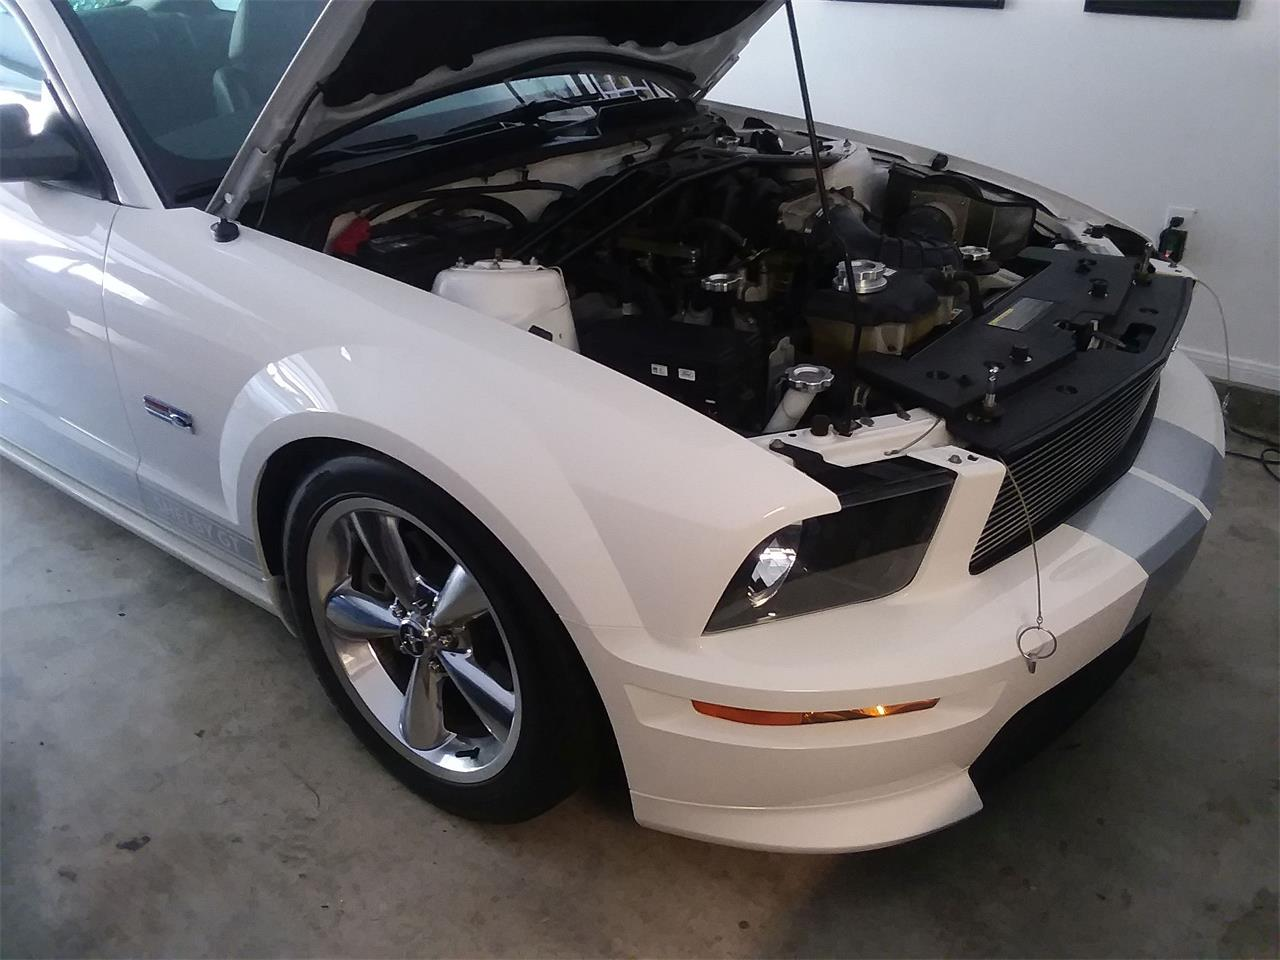 2007 Shelby GT for sale in Santa Rosa Valley, CA – photo 7